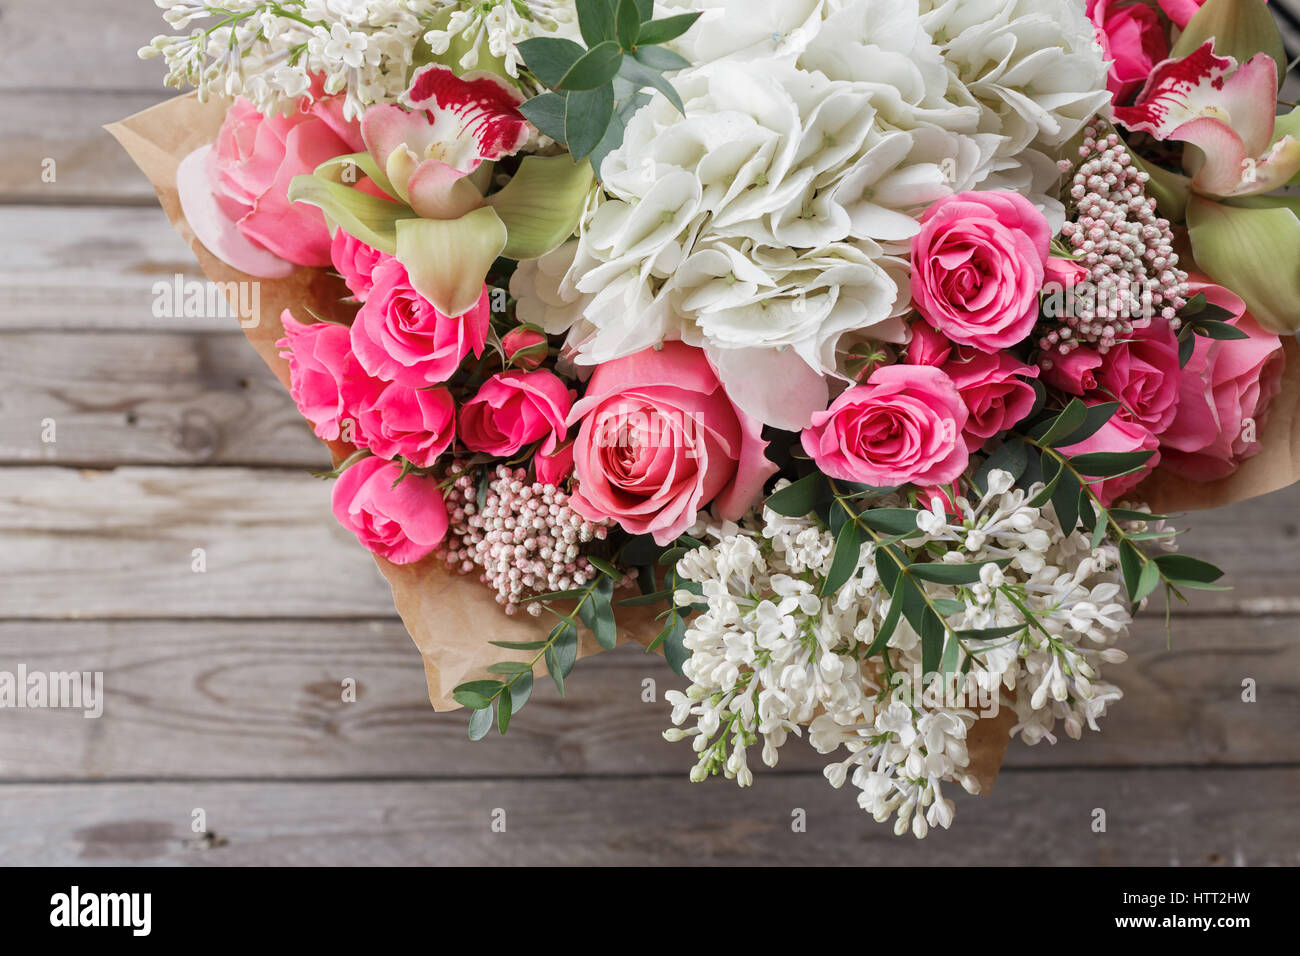 Luxury bouquet of different flowers in glass vase on wooden wall luxury bouquet of different flowers in glass vase on wooden wall copy space izmirmasajfo